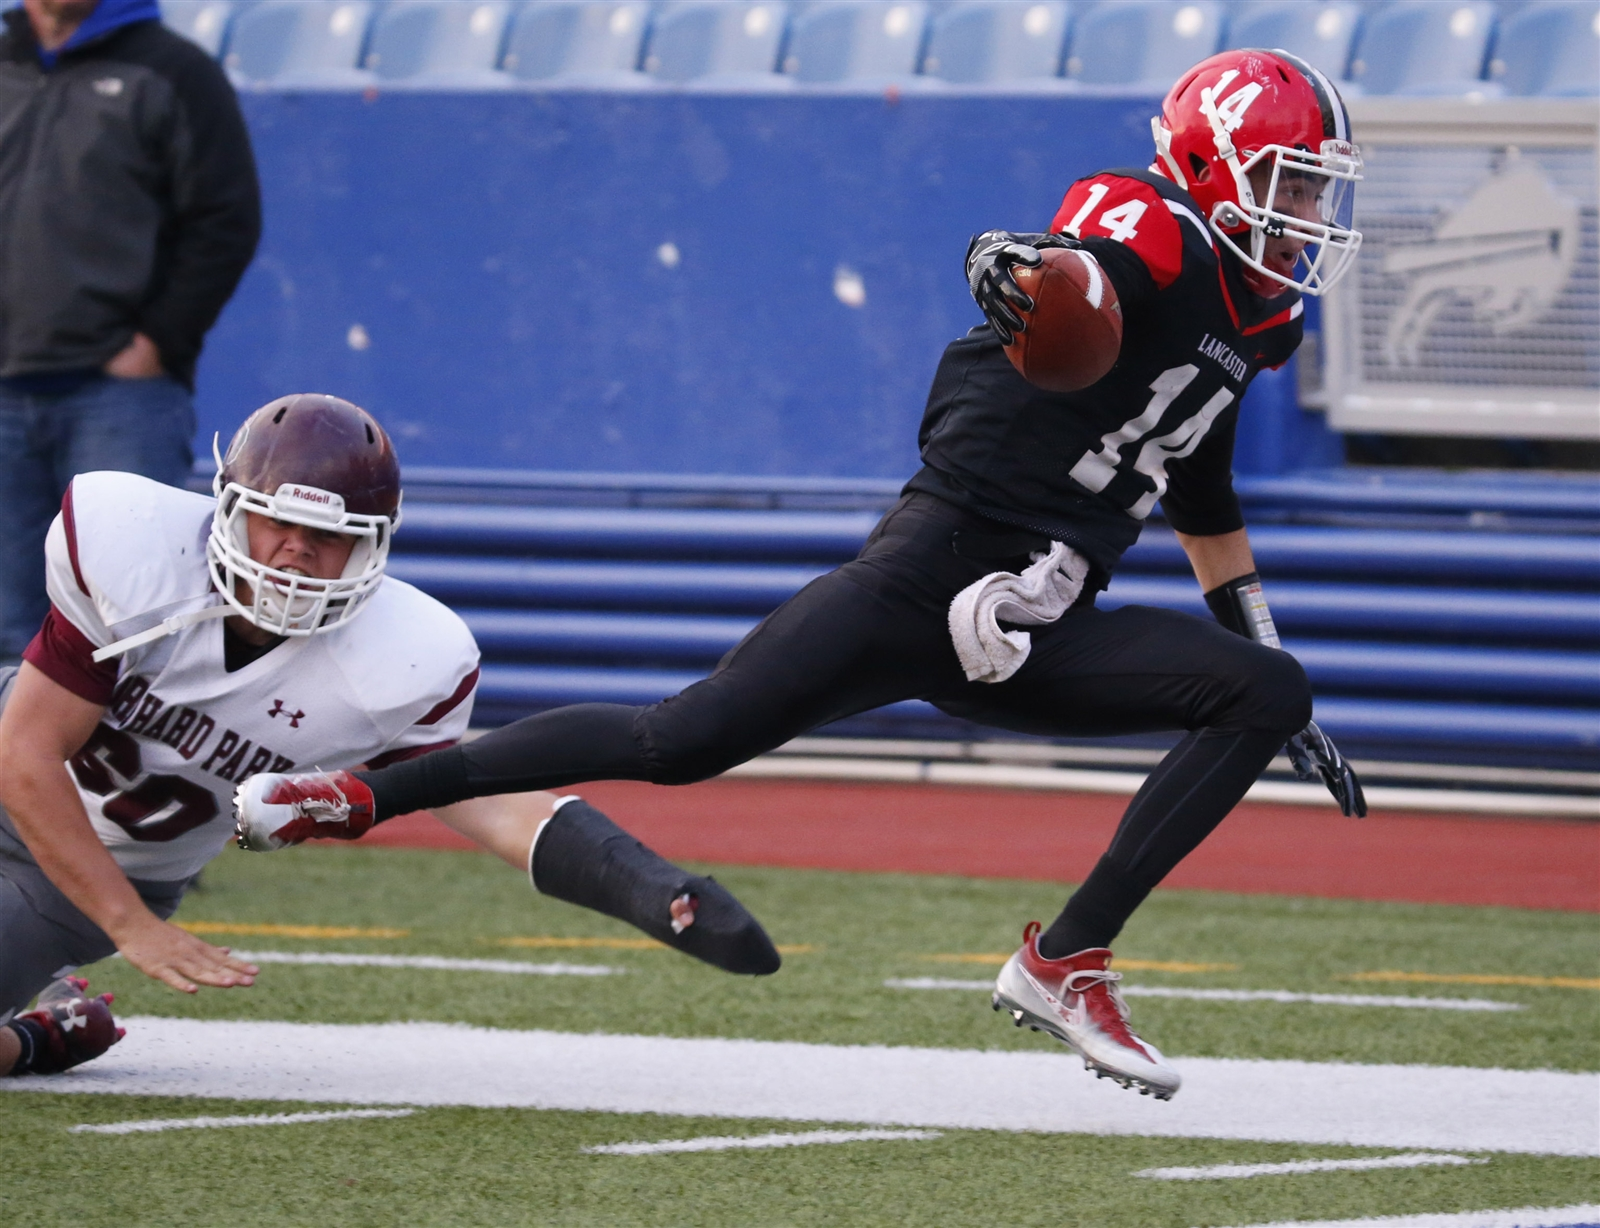 Max Giordano returns one of his three interceptions for Lancaster during last week's Section VI final triumph over Orchard Park. (Harry Scull Jr./Buffalo News)